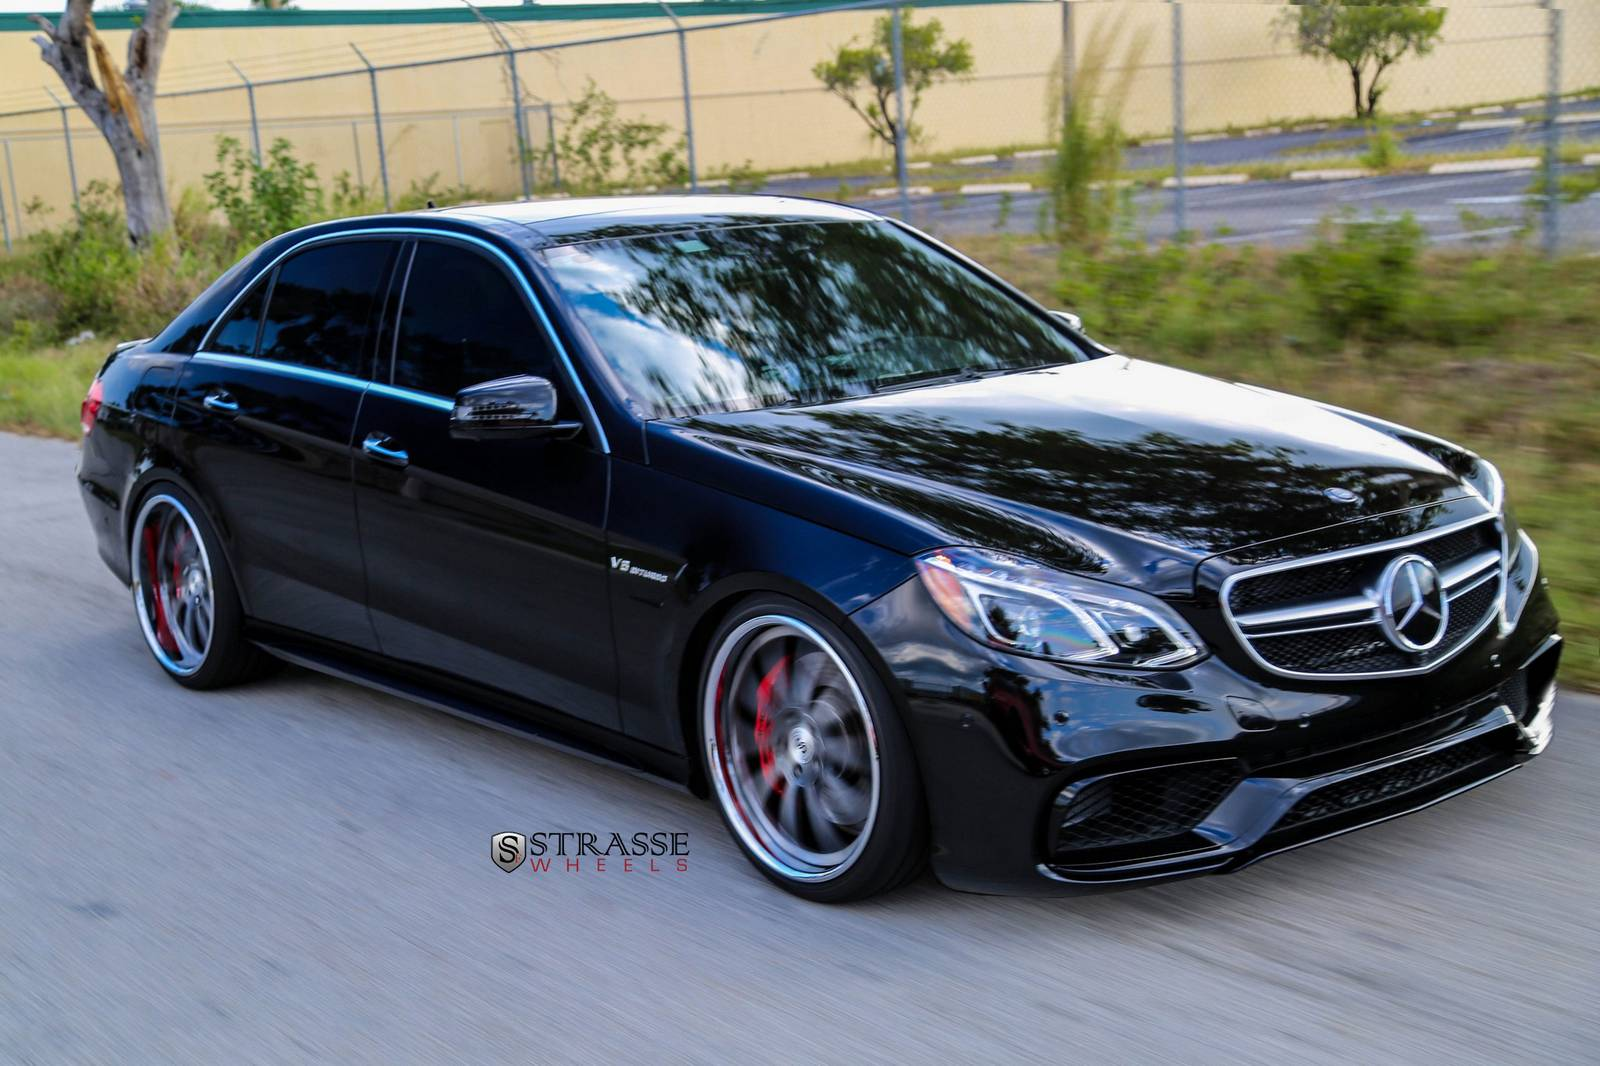 2014 mercedes benz e63 amg s by titanio automotive. Black Bedroom Furniture Sets. Home Design Ideas